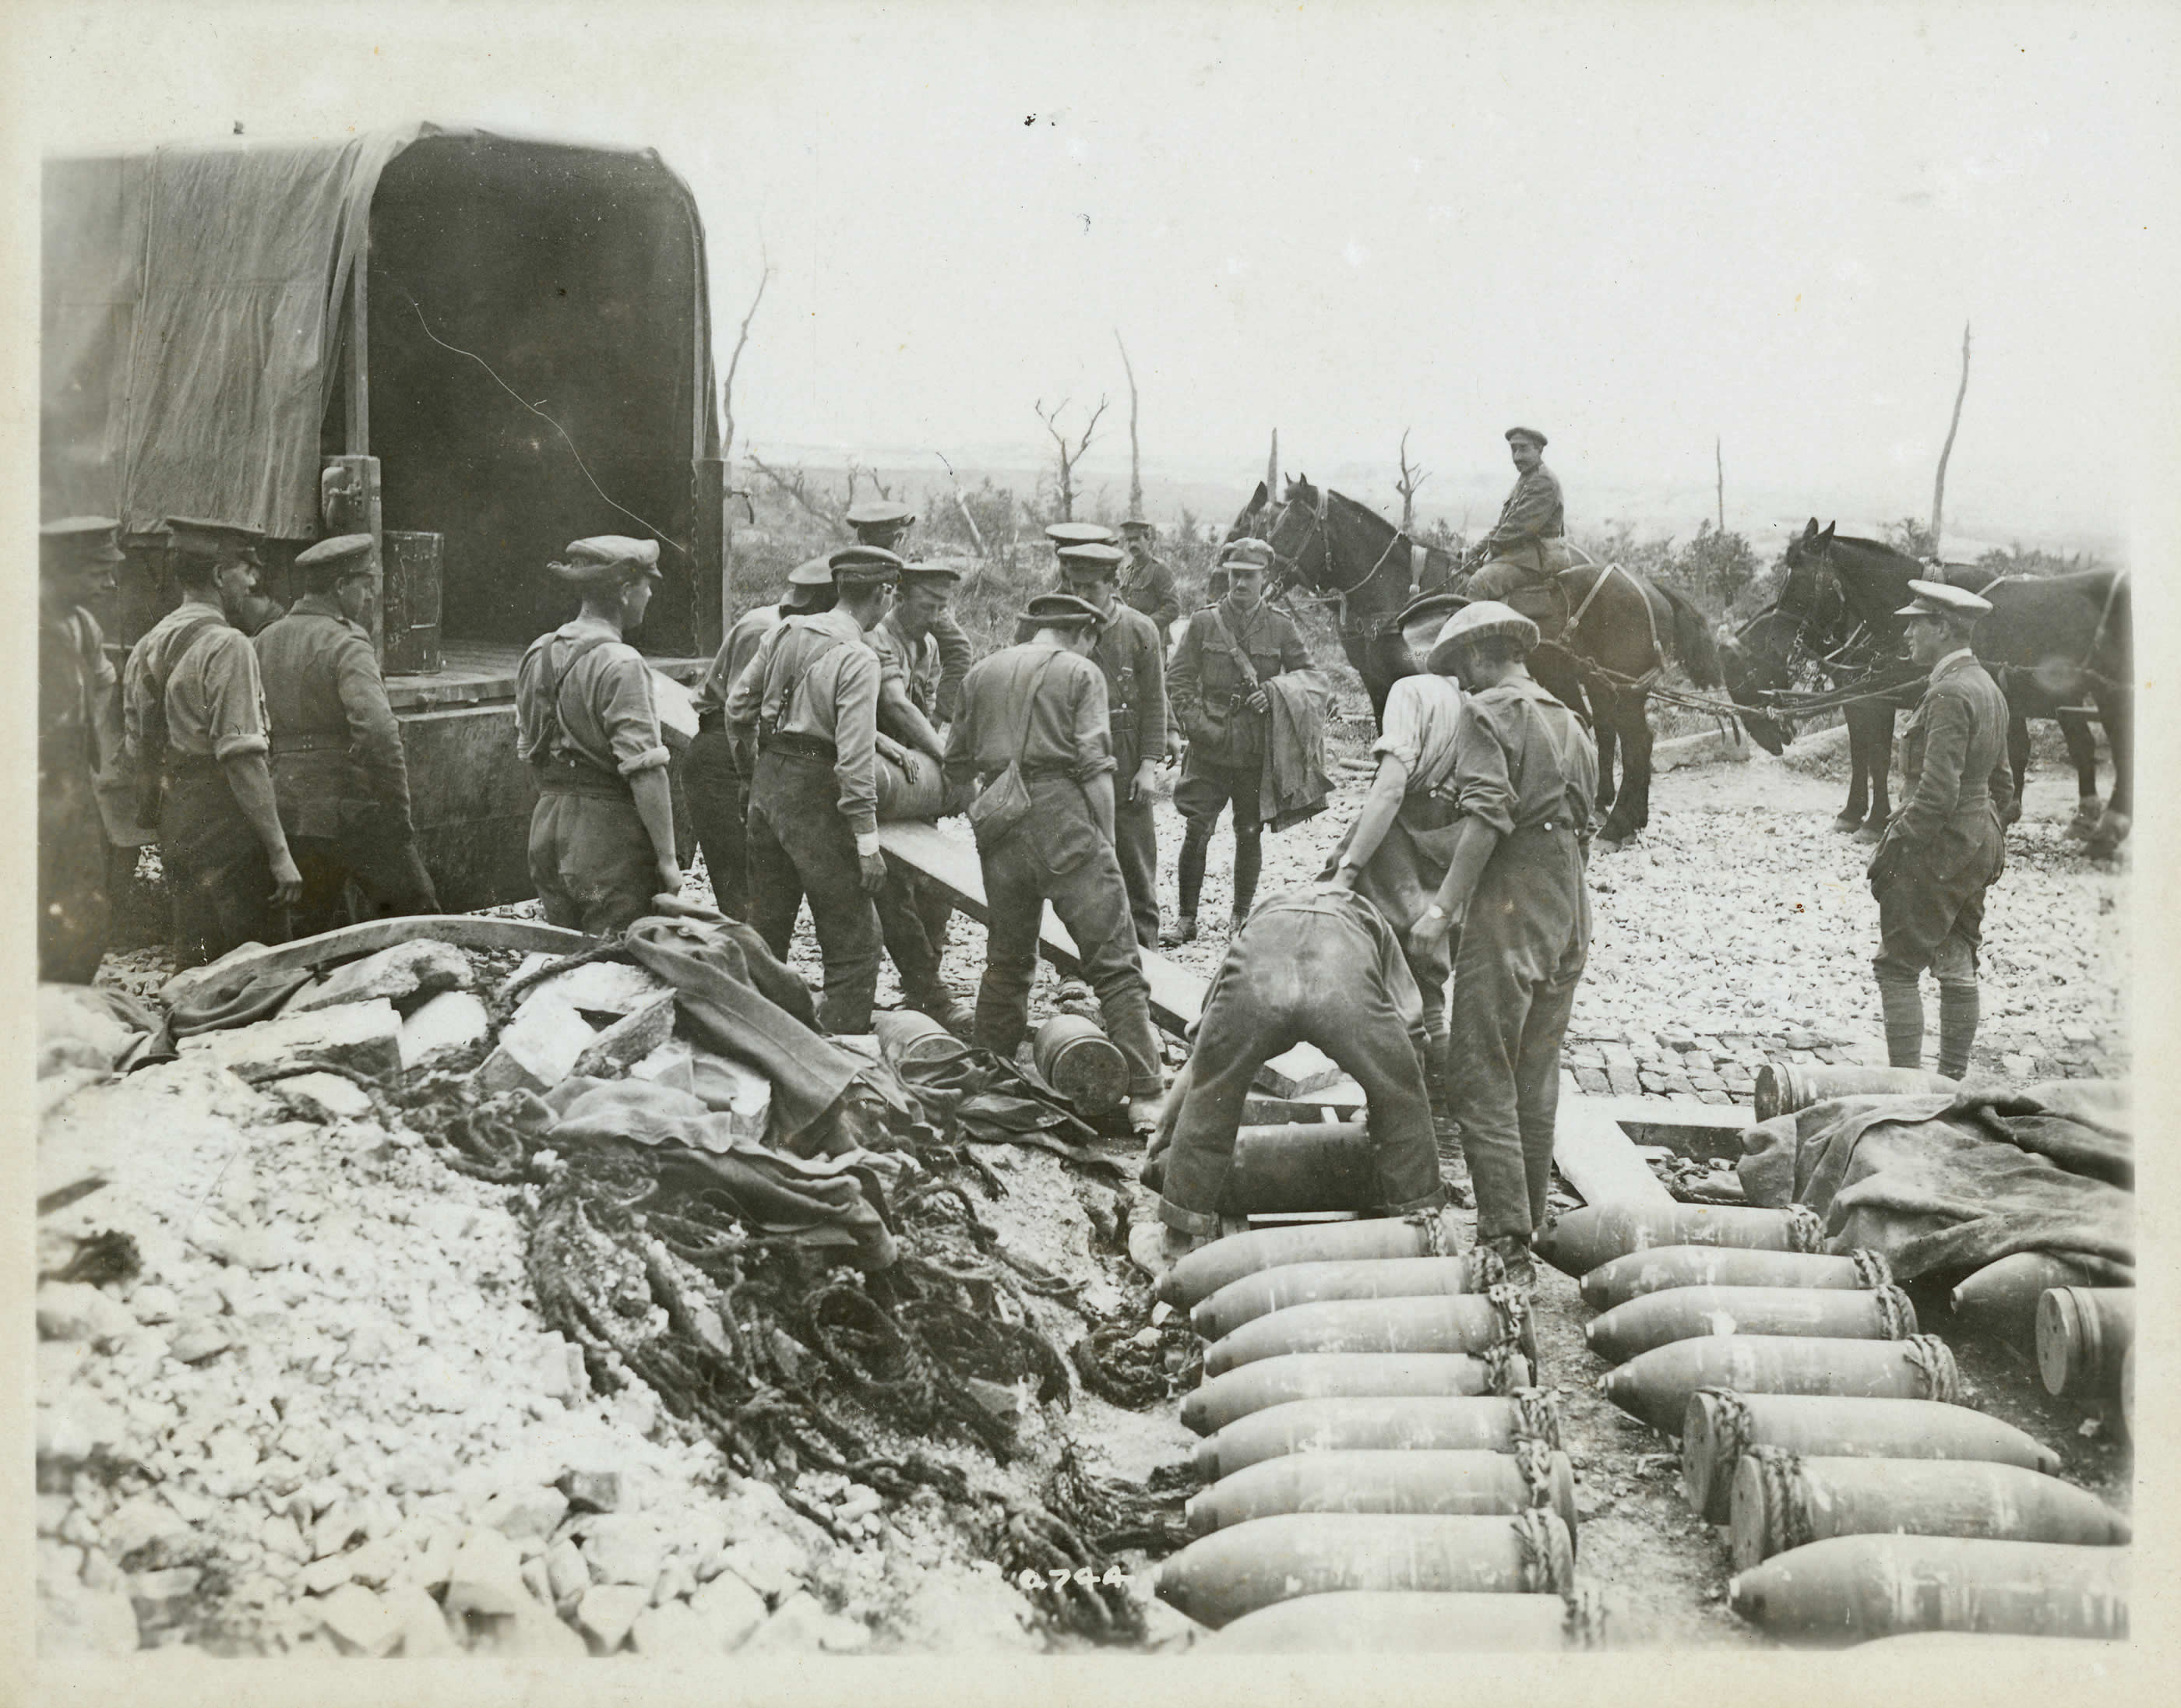 Unloading Heavy Shells